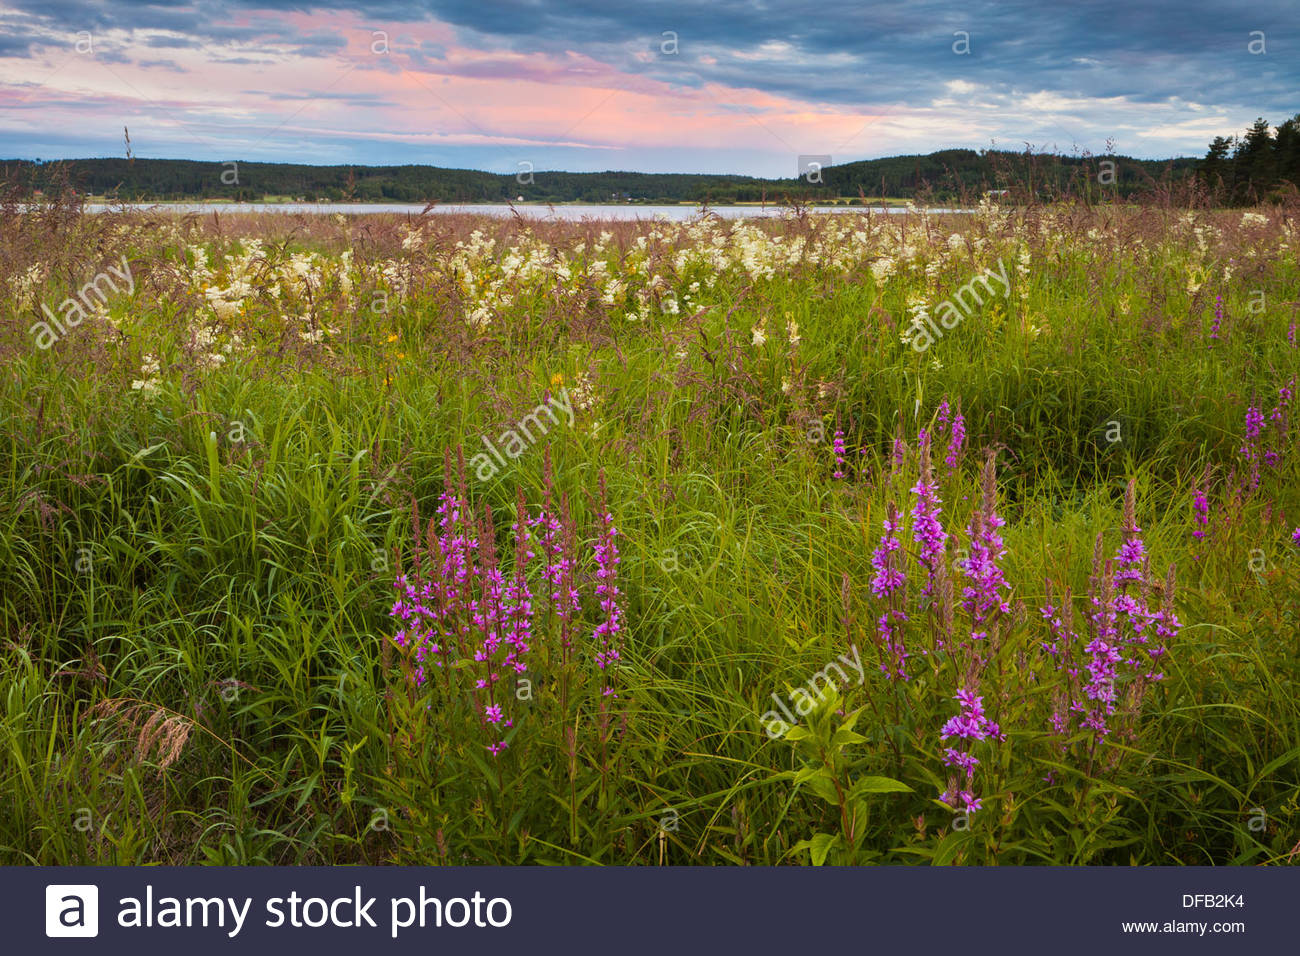 Beautiful purple loosestrife flowers, Lythrum salicaria, in a meadow near the lake Sæbyvannet in Østfold, Norway. Stock Photo